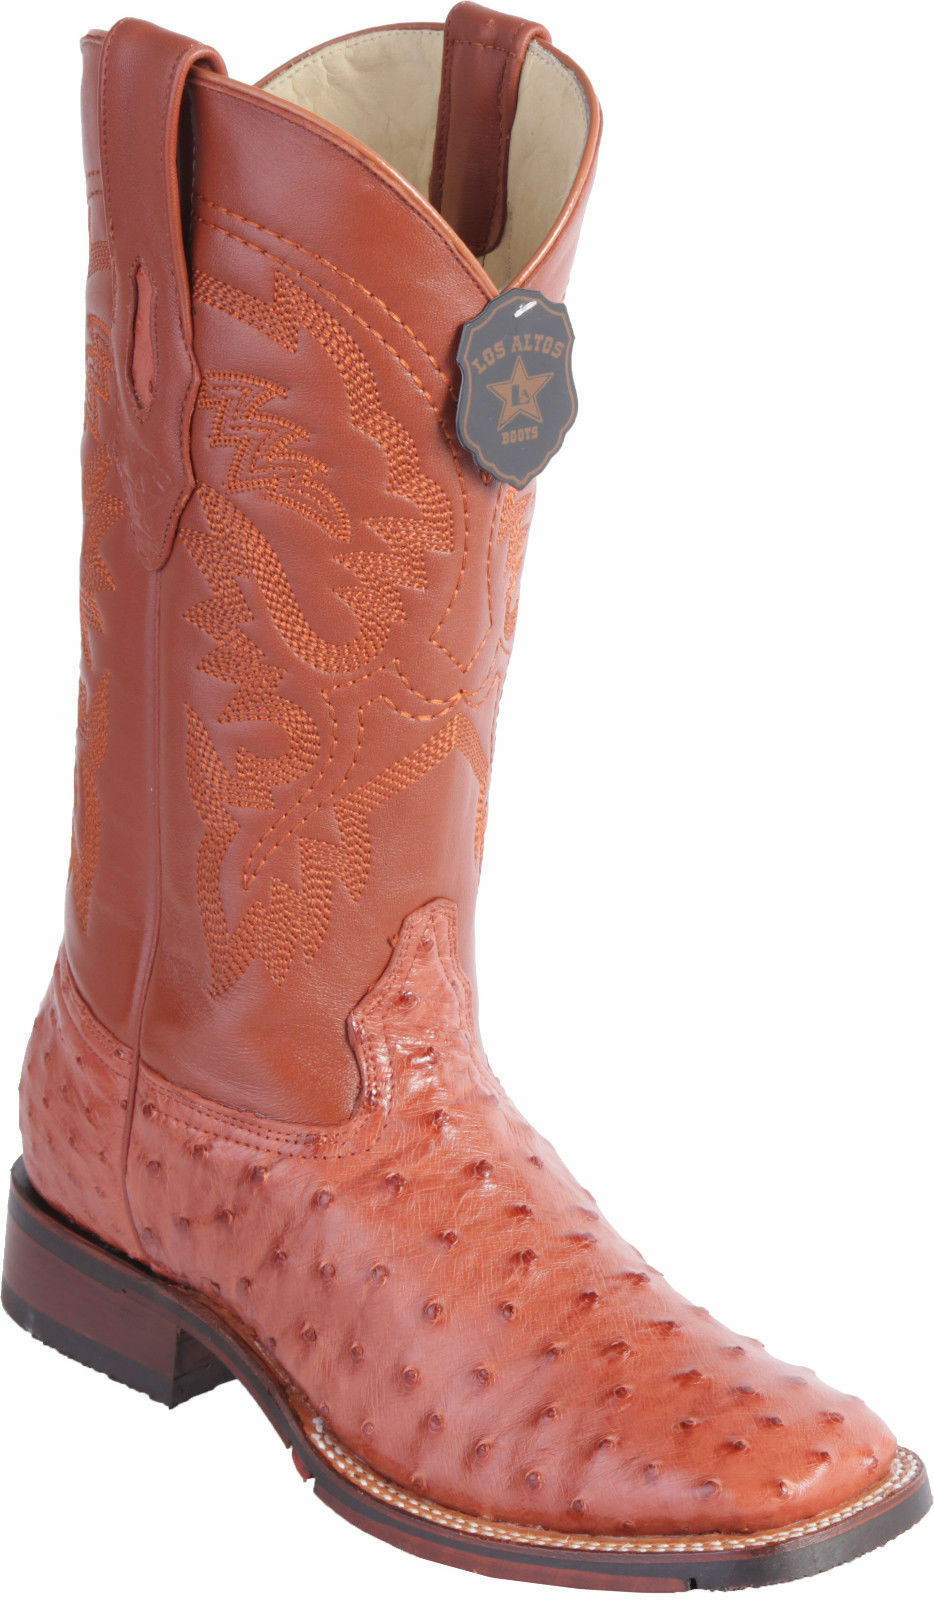 Los Altos COGNAC Ostrich Square Toe TPU Rubber Sole Western Cowboy Boot D